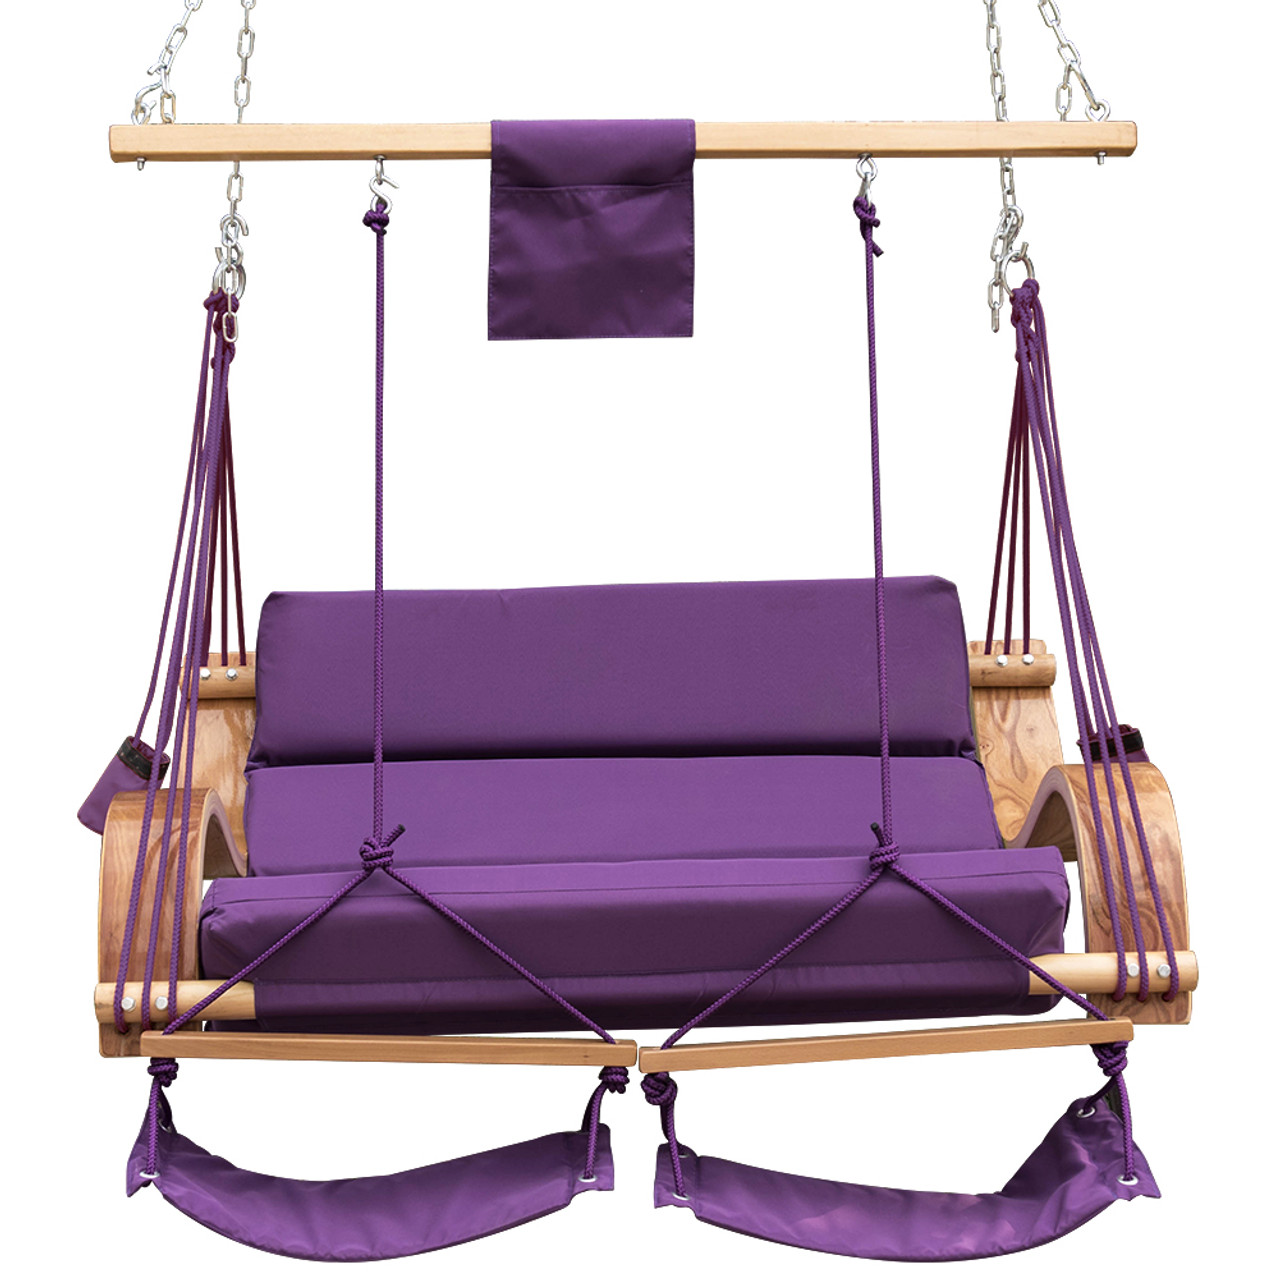 Amazing Lazy Daze Hammocks Deluxe Oversized Double Hanging Rope Chair Cotton Padded  Swing Chair Wood Arc Hammock ...